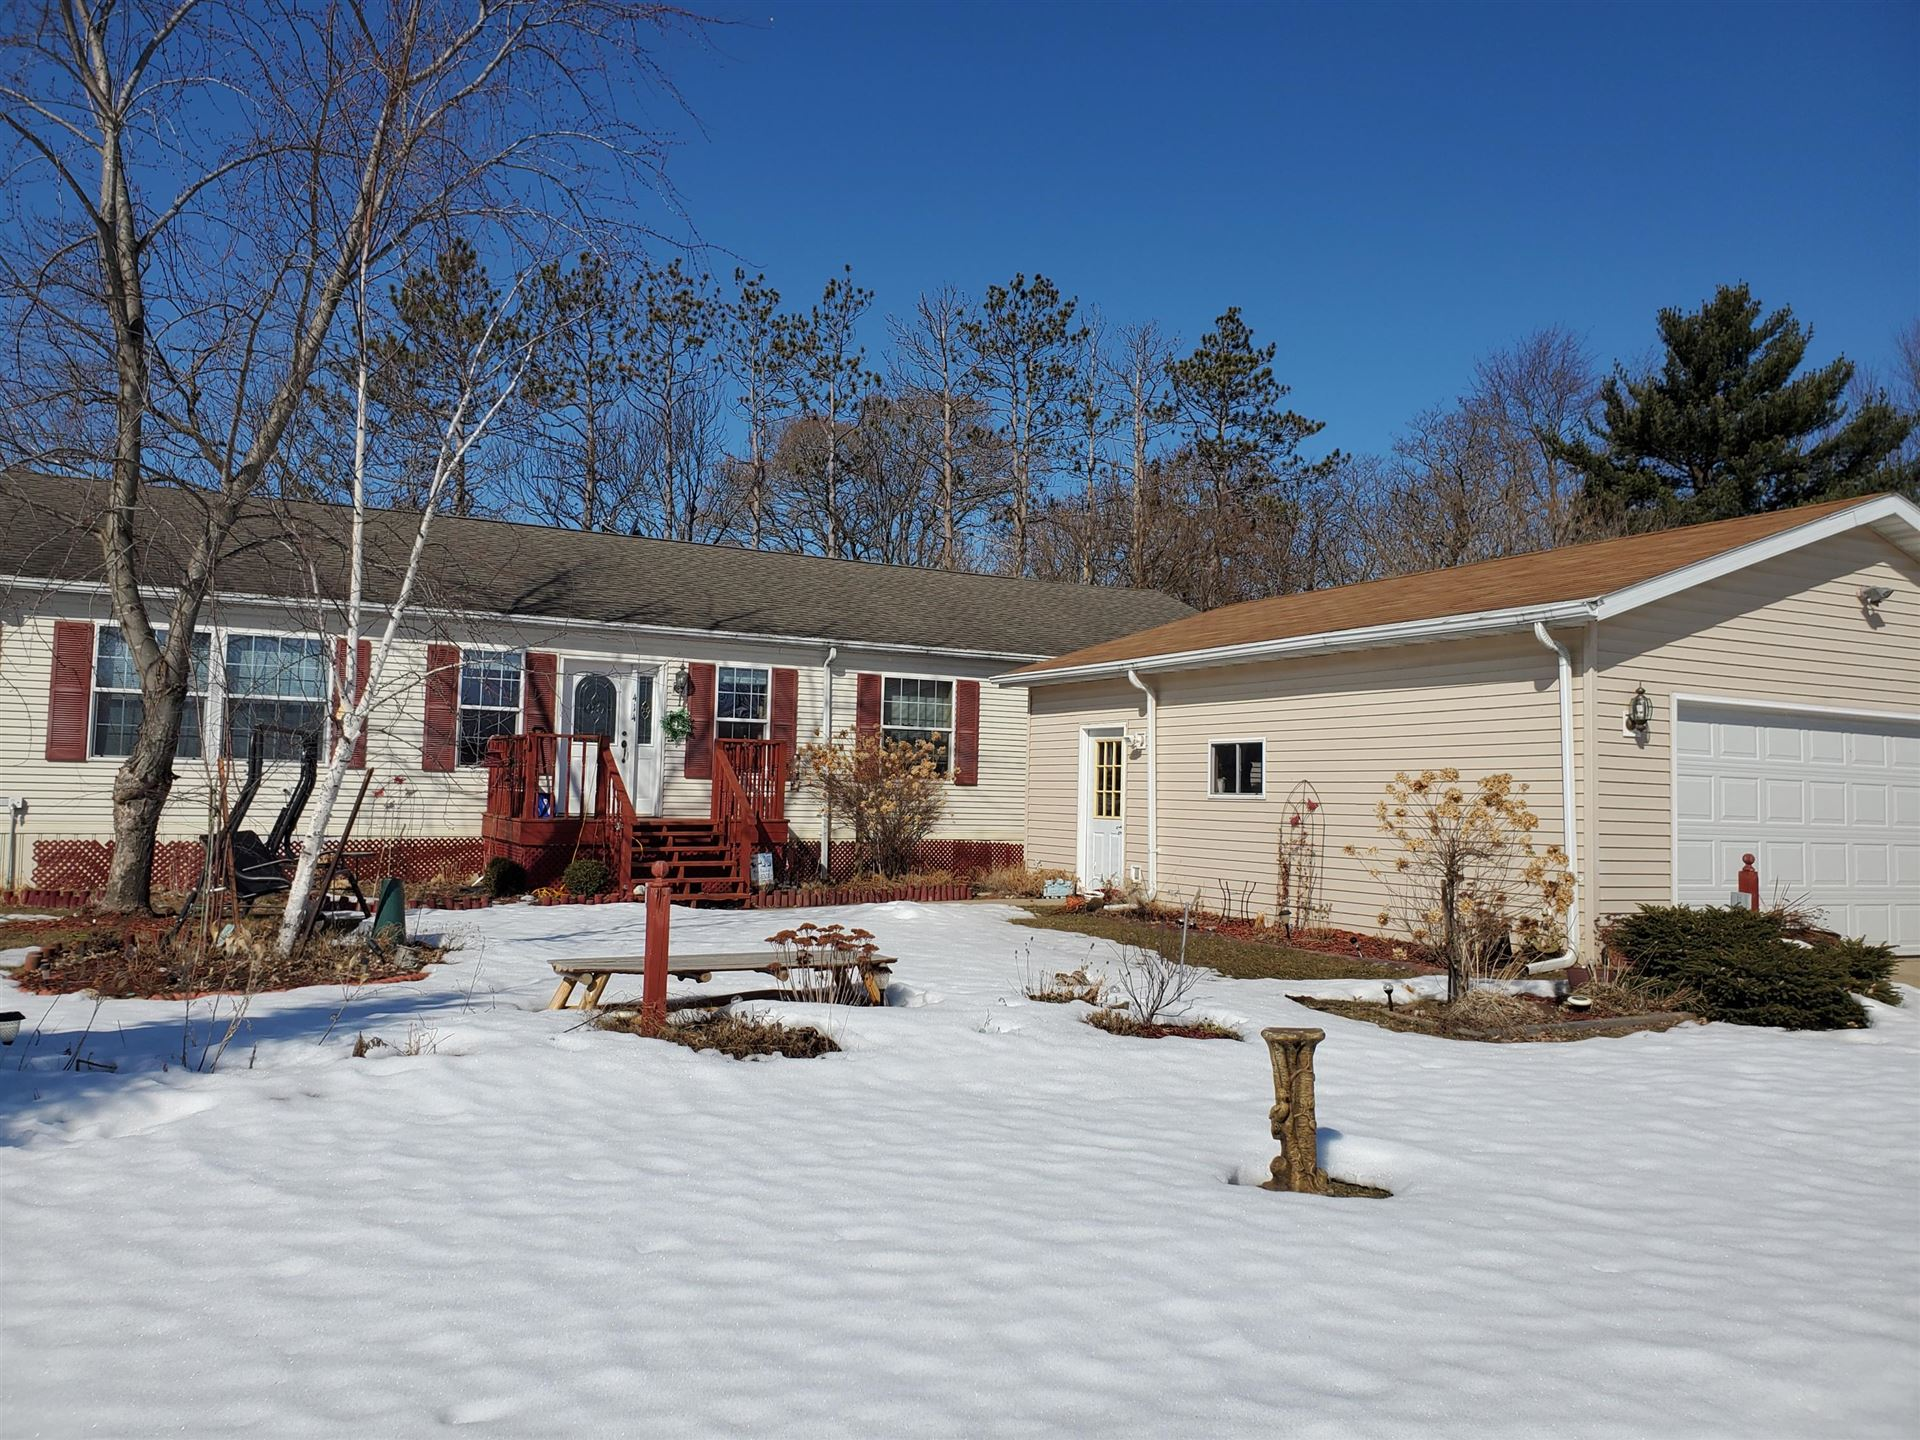 414 Green Acres Ave, Tomah, WI 54660 - MLS#: 1729650